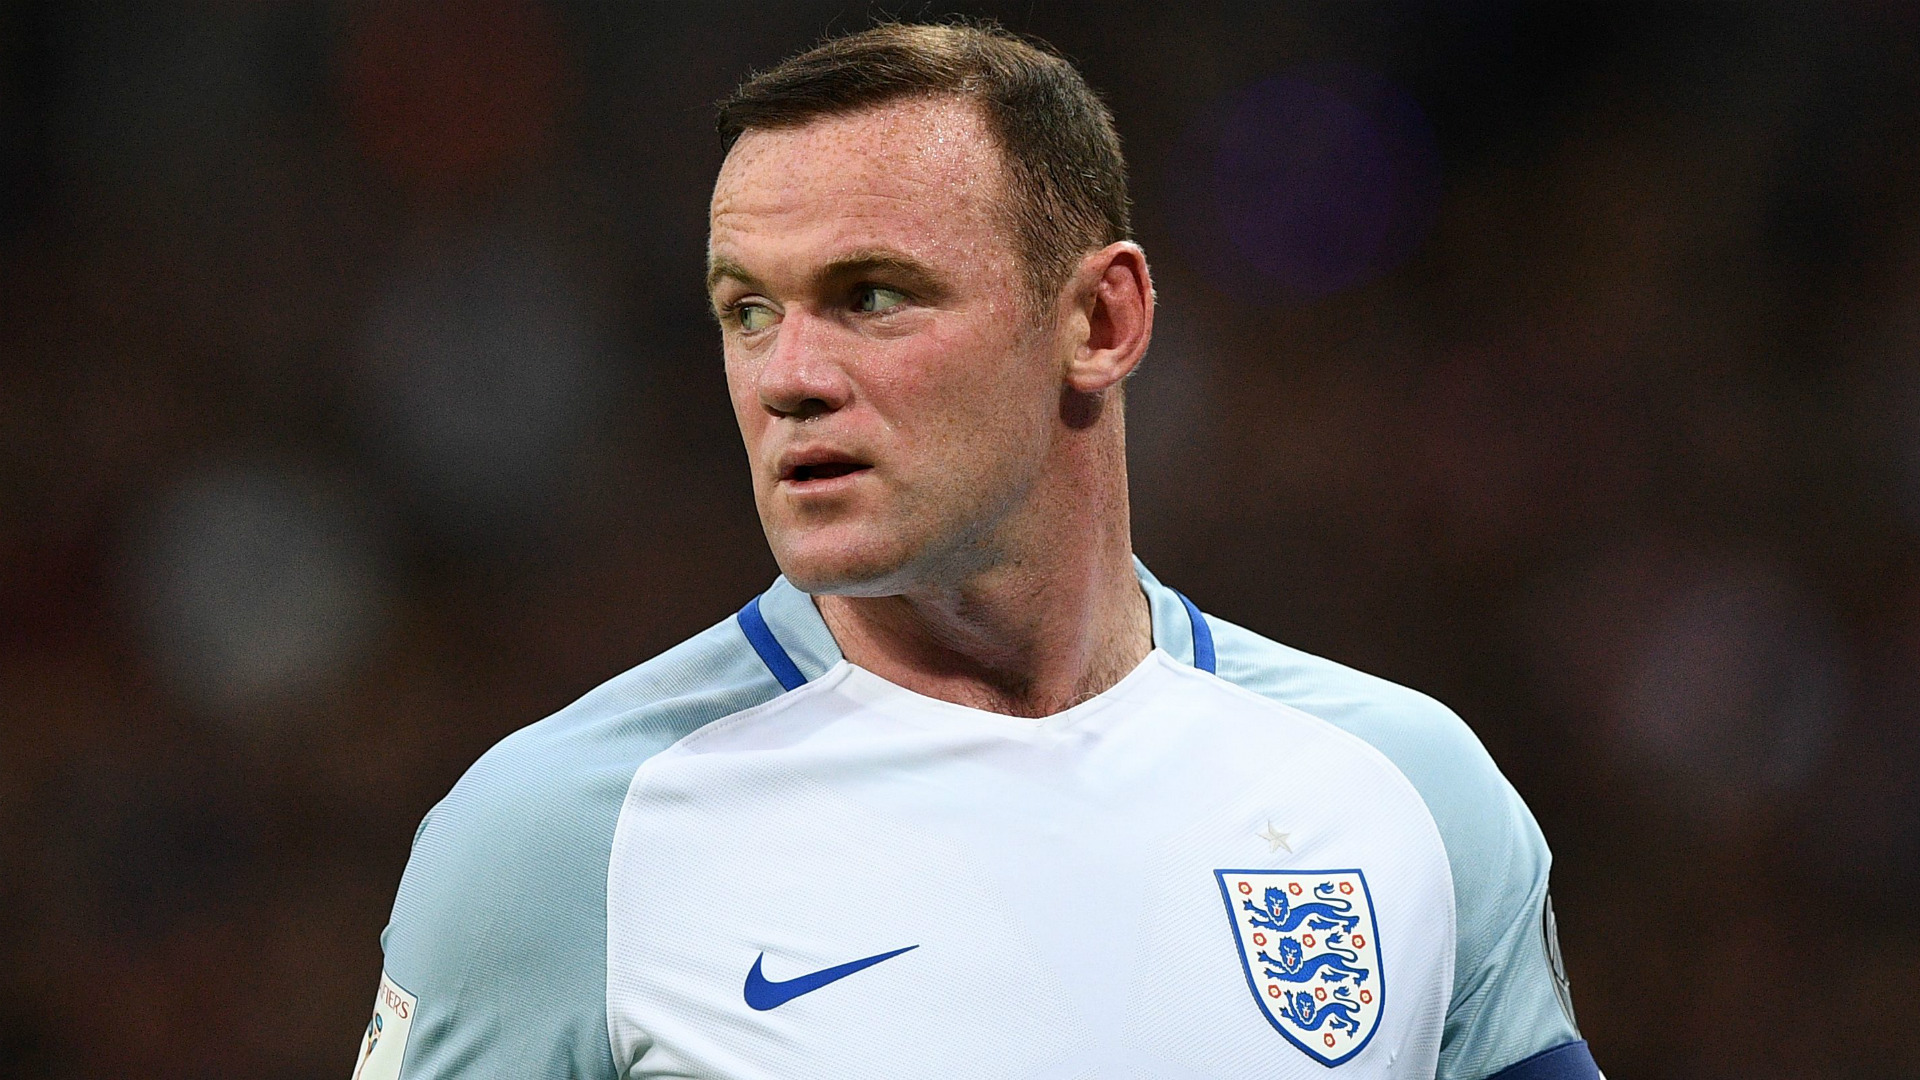 'I'm not making any demands': Wayne Rooney on his England farewell